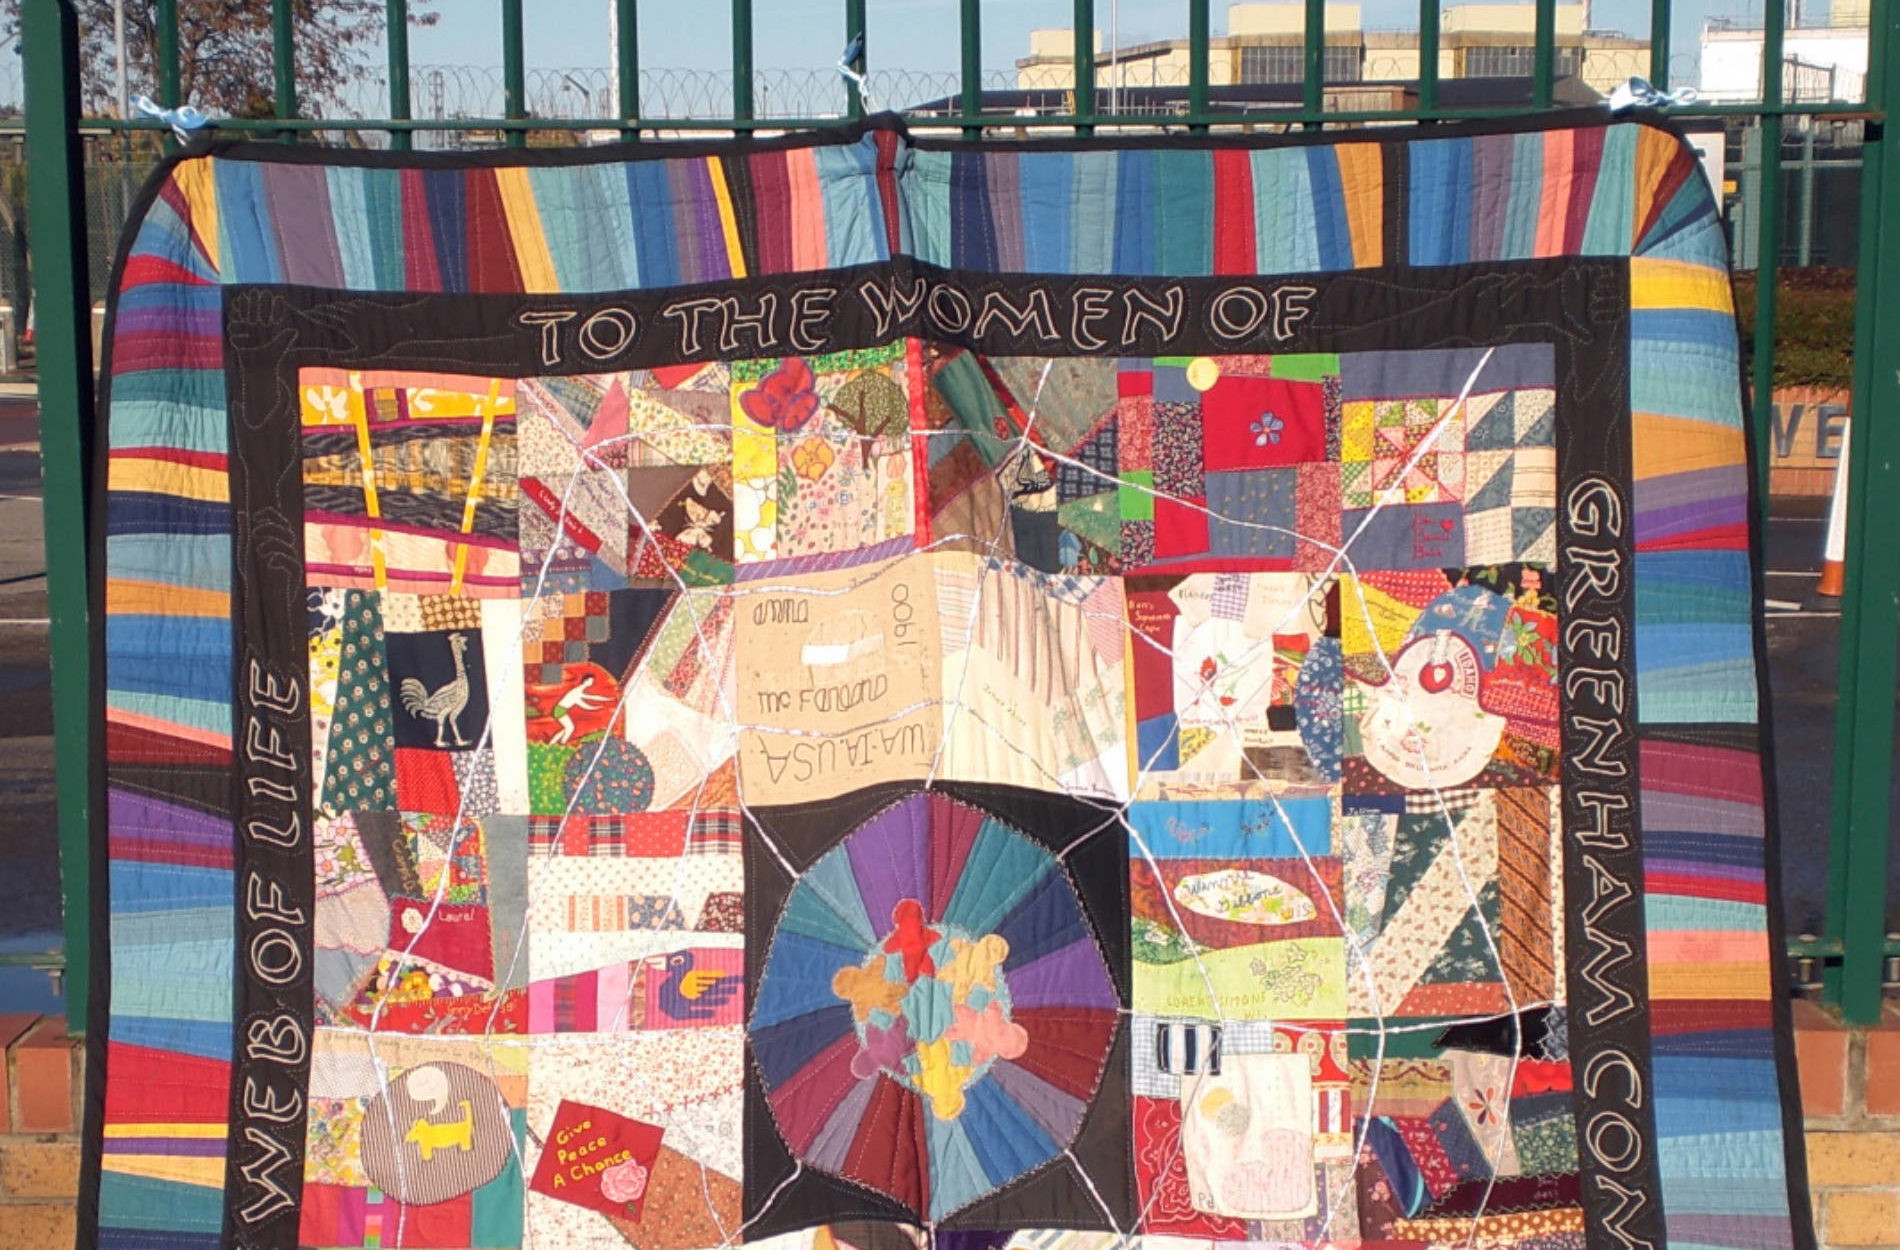 Women of Greenham quilt